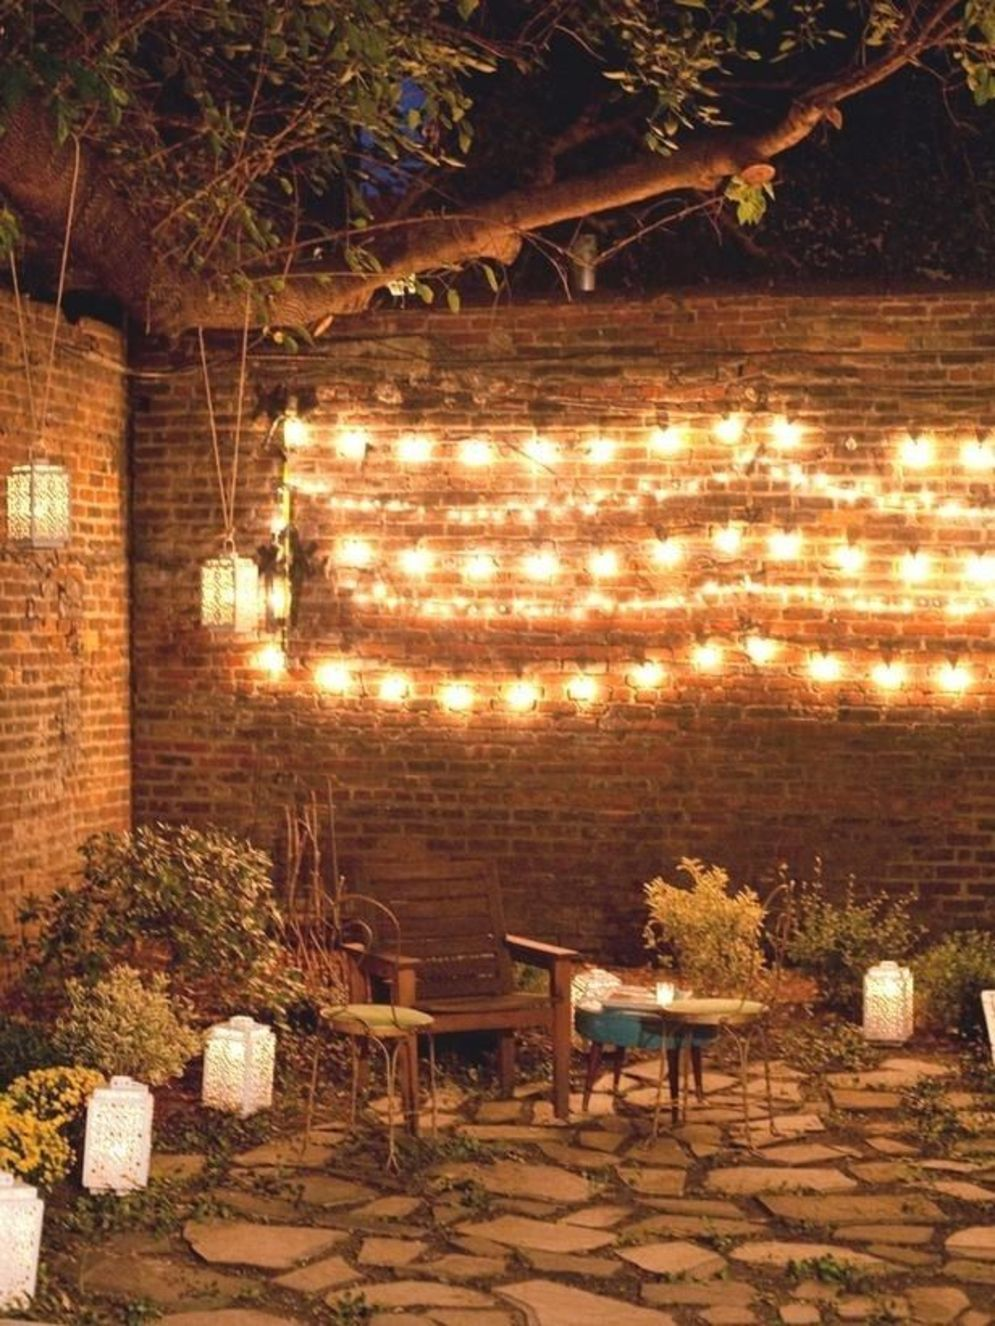 Amazing Garden Lighting Styles To Make Your Outdoor Space Livelier Than Ever Shairoom Com Backyard Lighting Backyard Outdoor Living